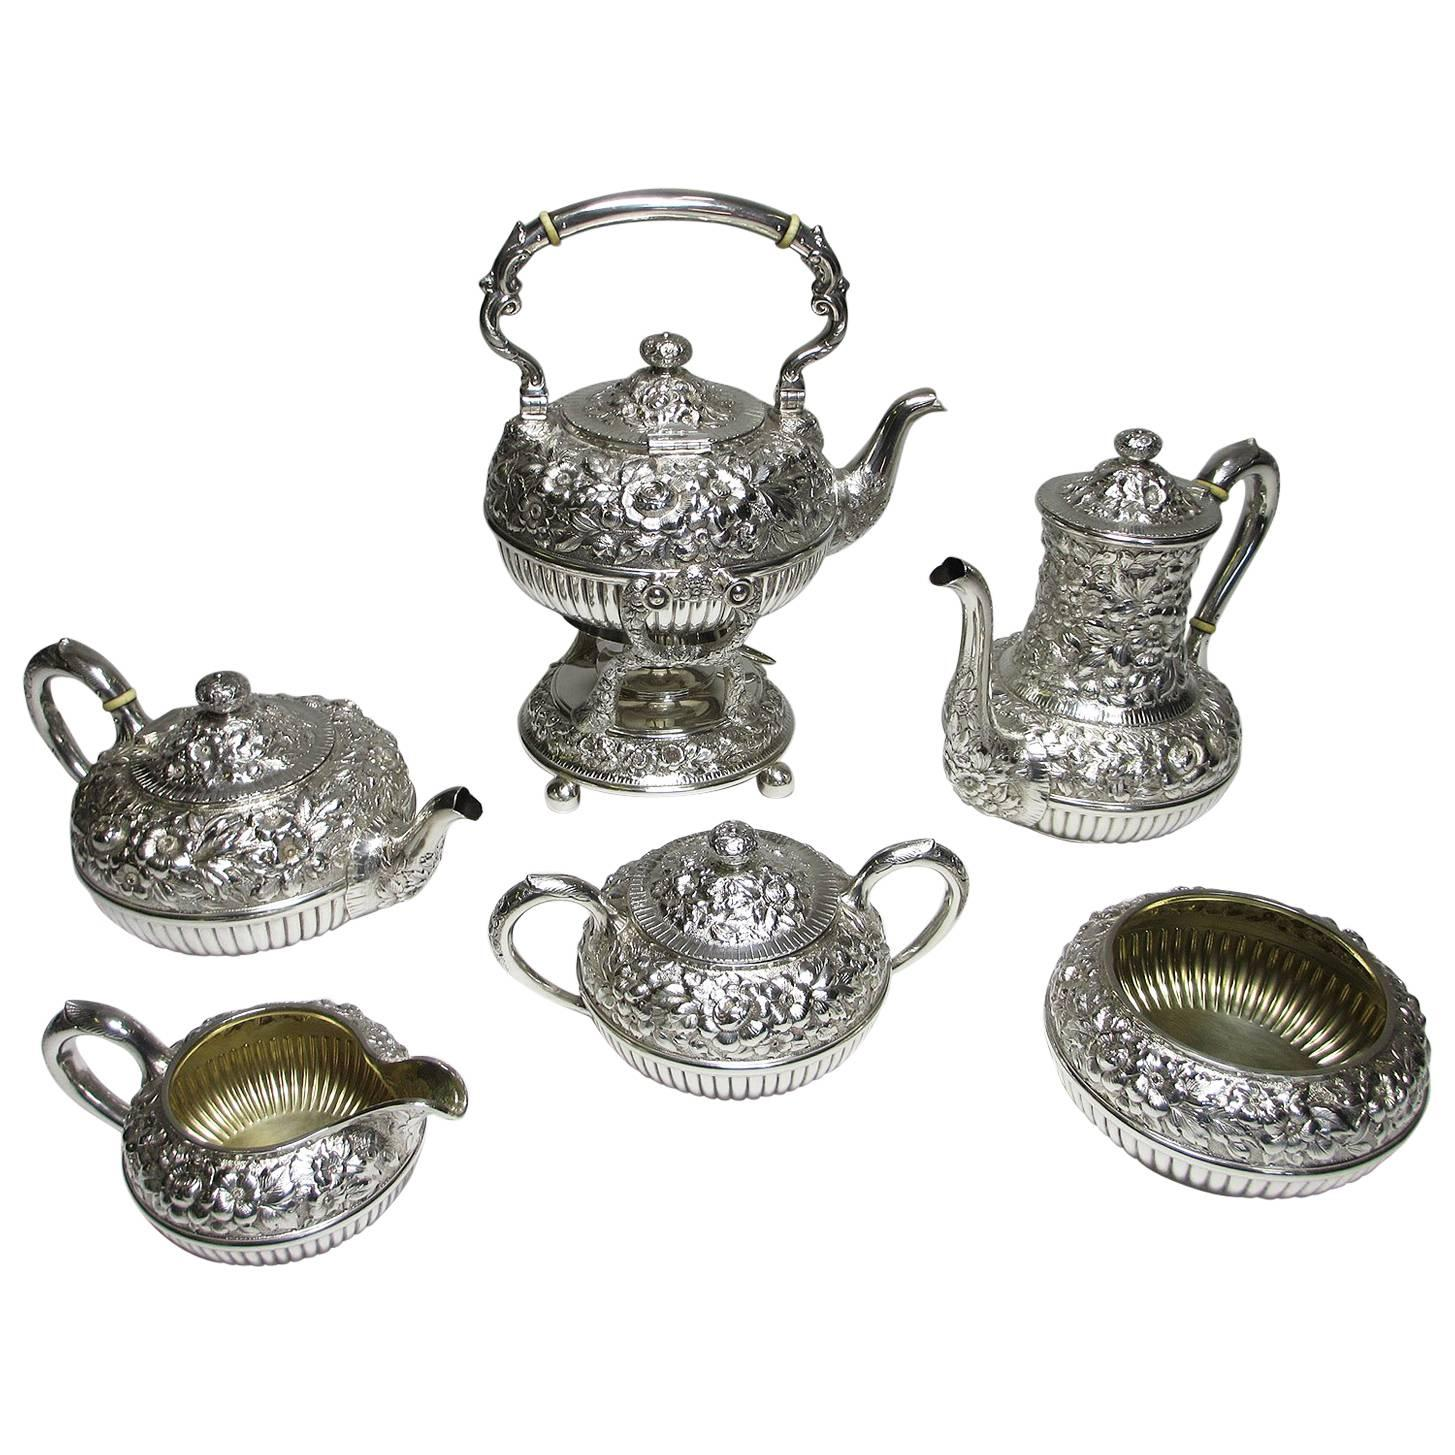 Geo C. Shreve & Co. a Finely Chased Six Piece Sterling Silver Tea and Coffee Set